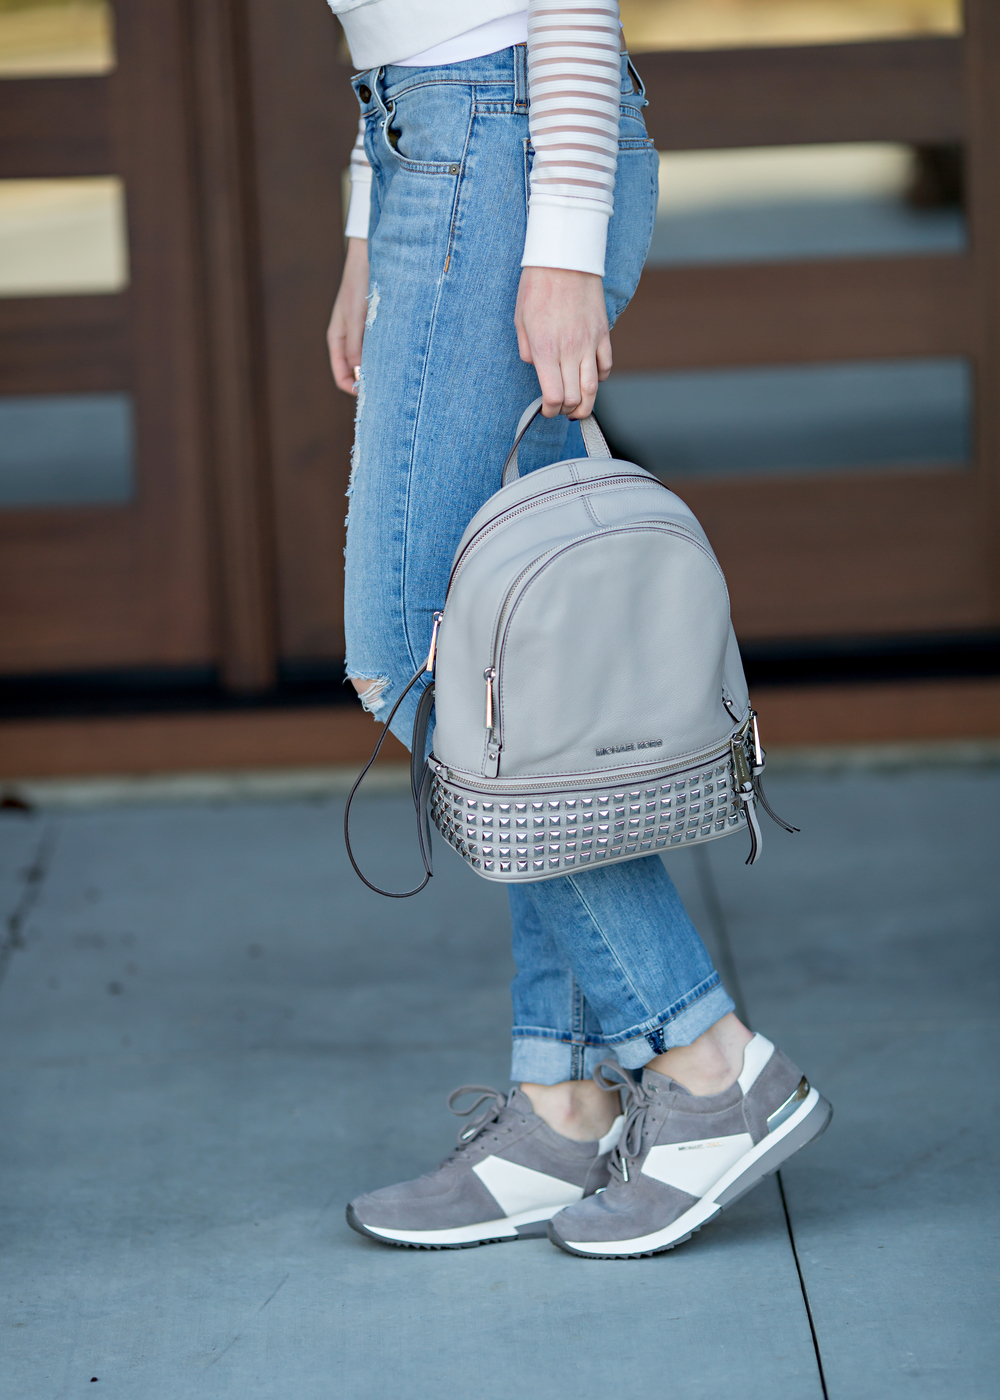 Michael Kors Stud Backpack and tennis shoes casual fashion